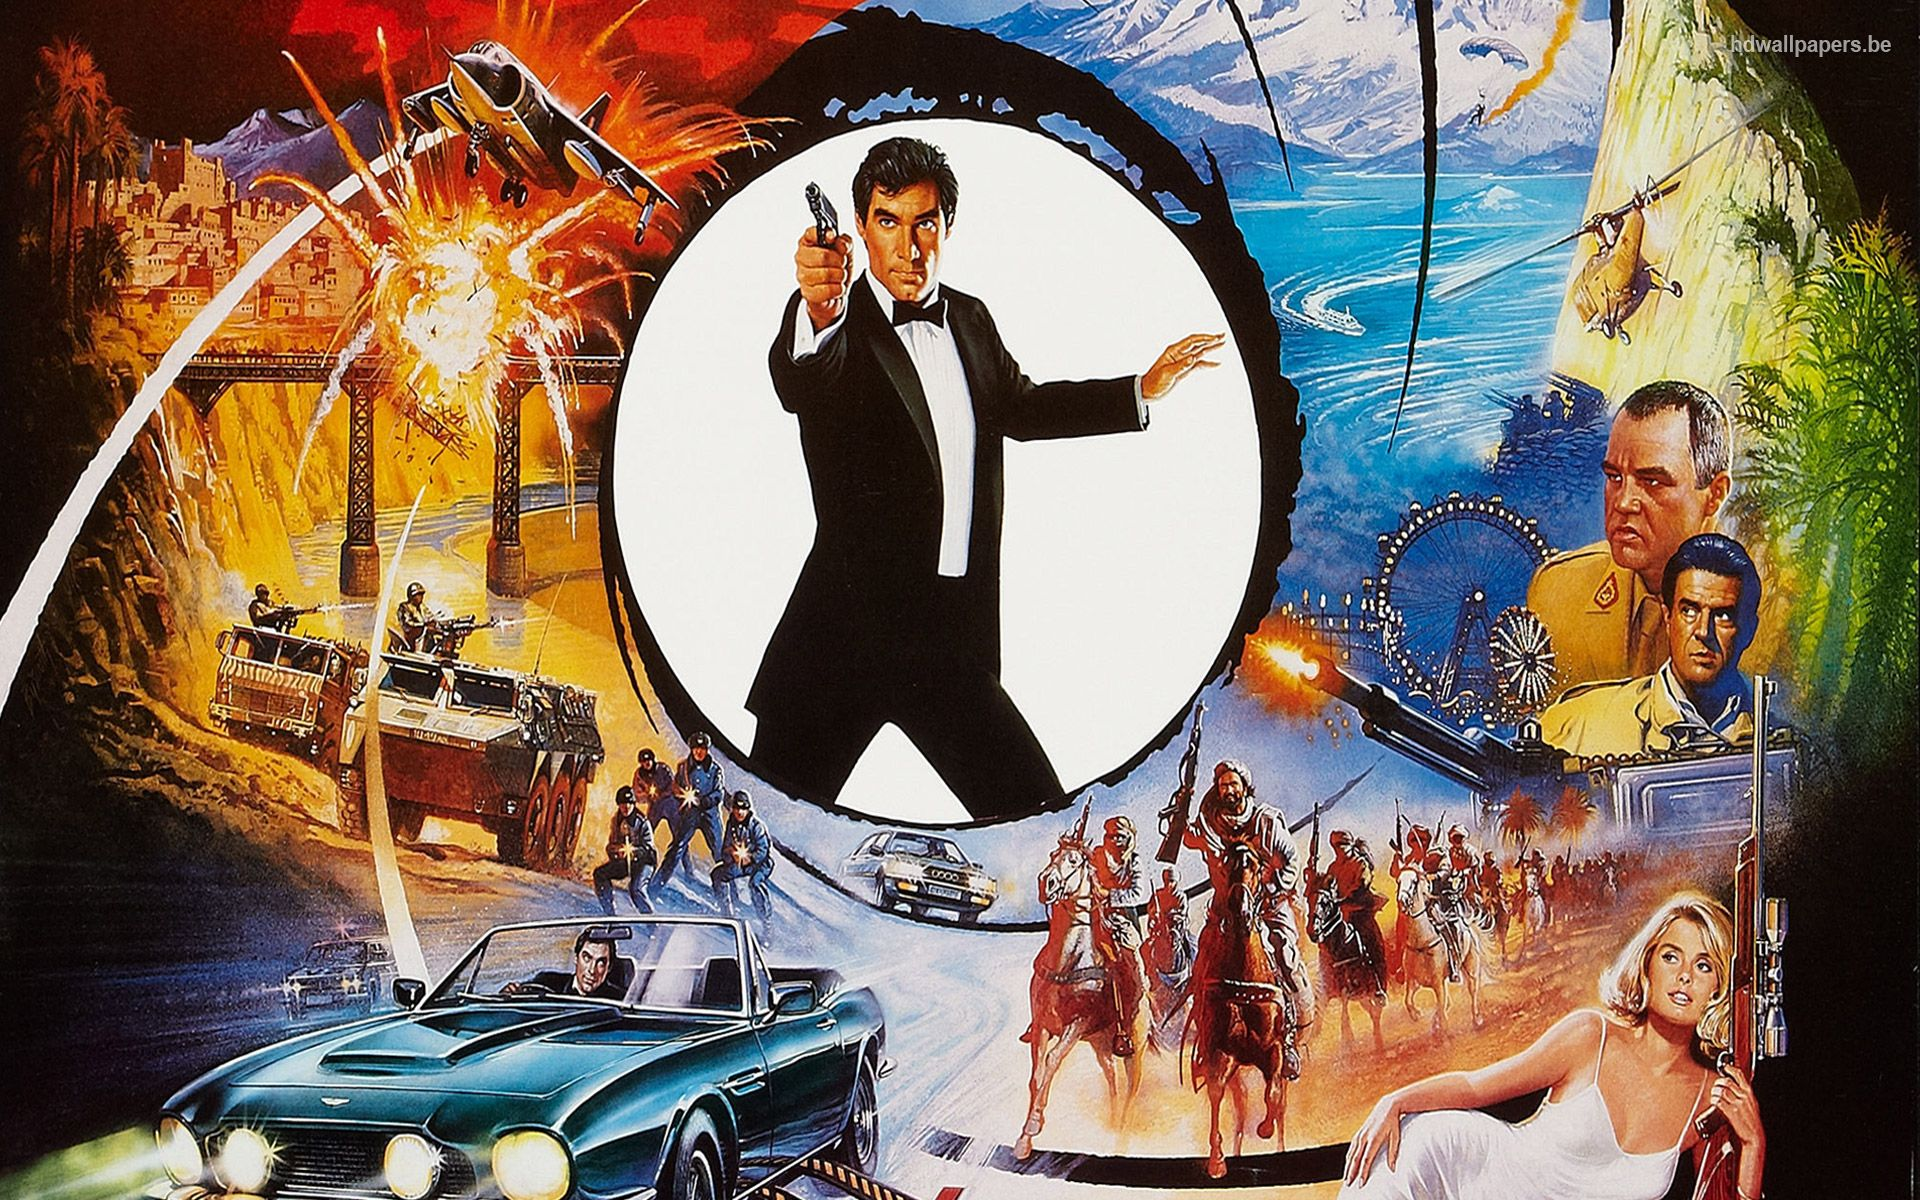 James Bond Wallpapers Vintage Poster Hd Wallpapers James Bond Movie Posters James Bond Movies Bond Movies